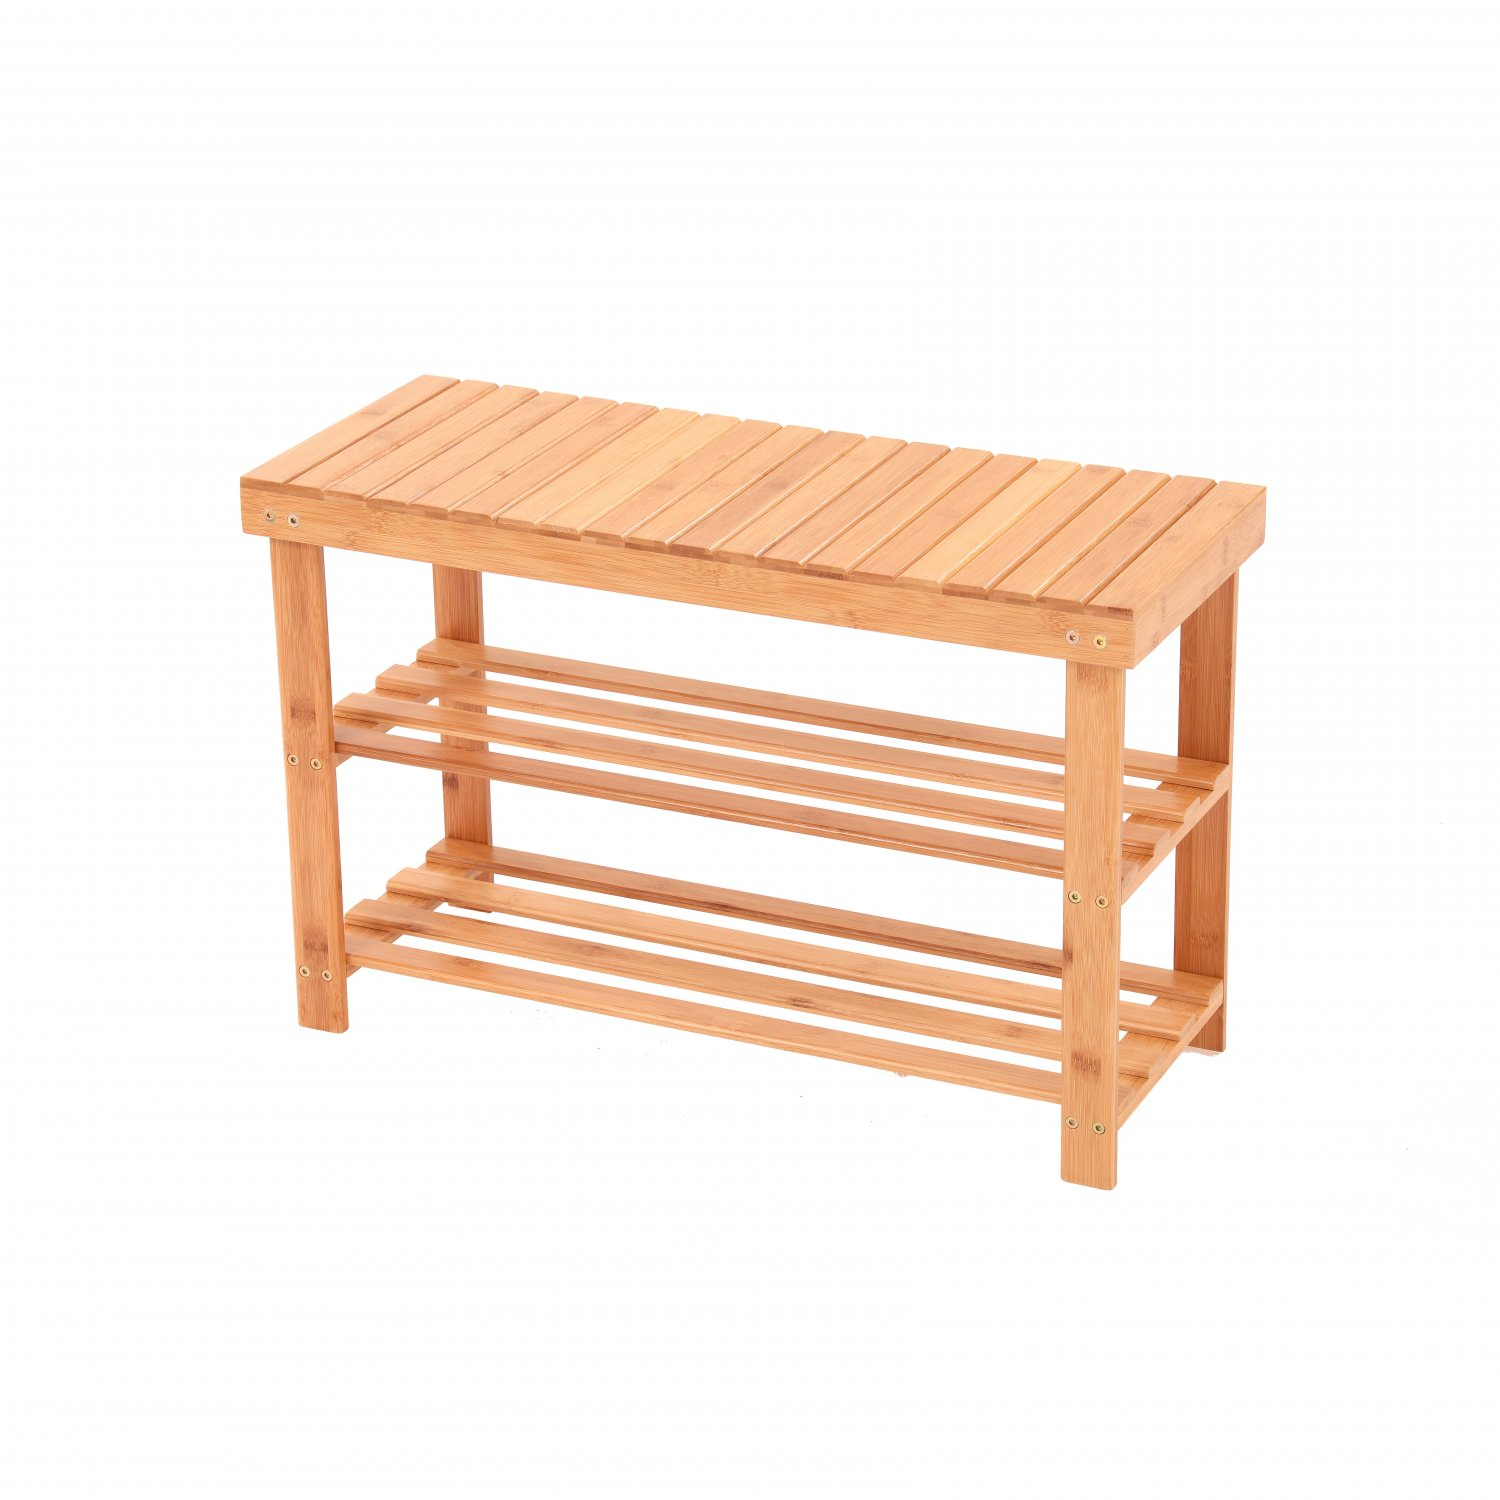 Picture of: 3 Tier Wooden Bamboo Shoe Rack Bench Storage Organiser Holder 21 99 Oypla Stocking The Very Best In Toys Electrical Furniture Homeware Garden Gifts And Much More